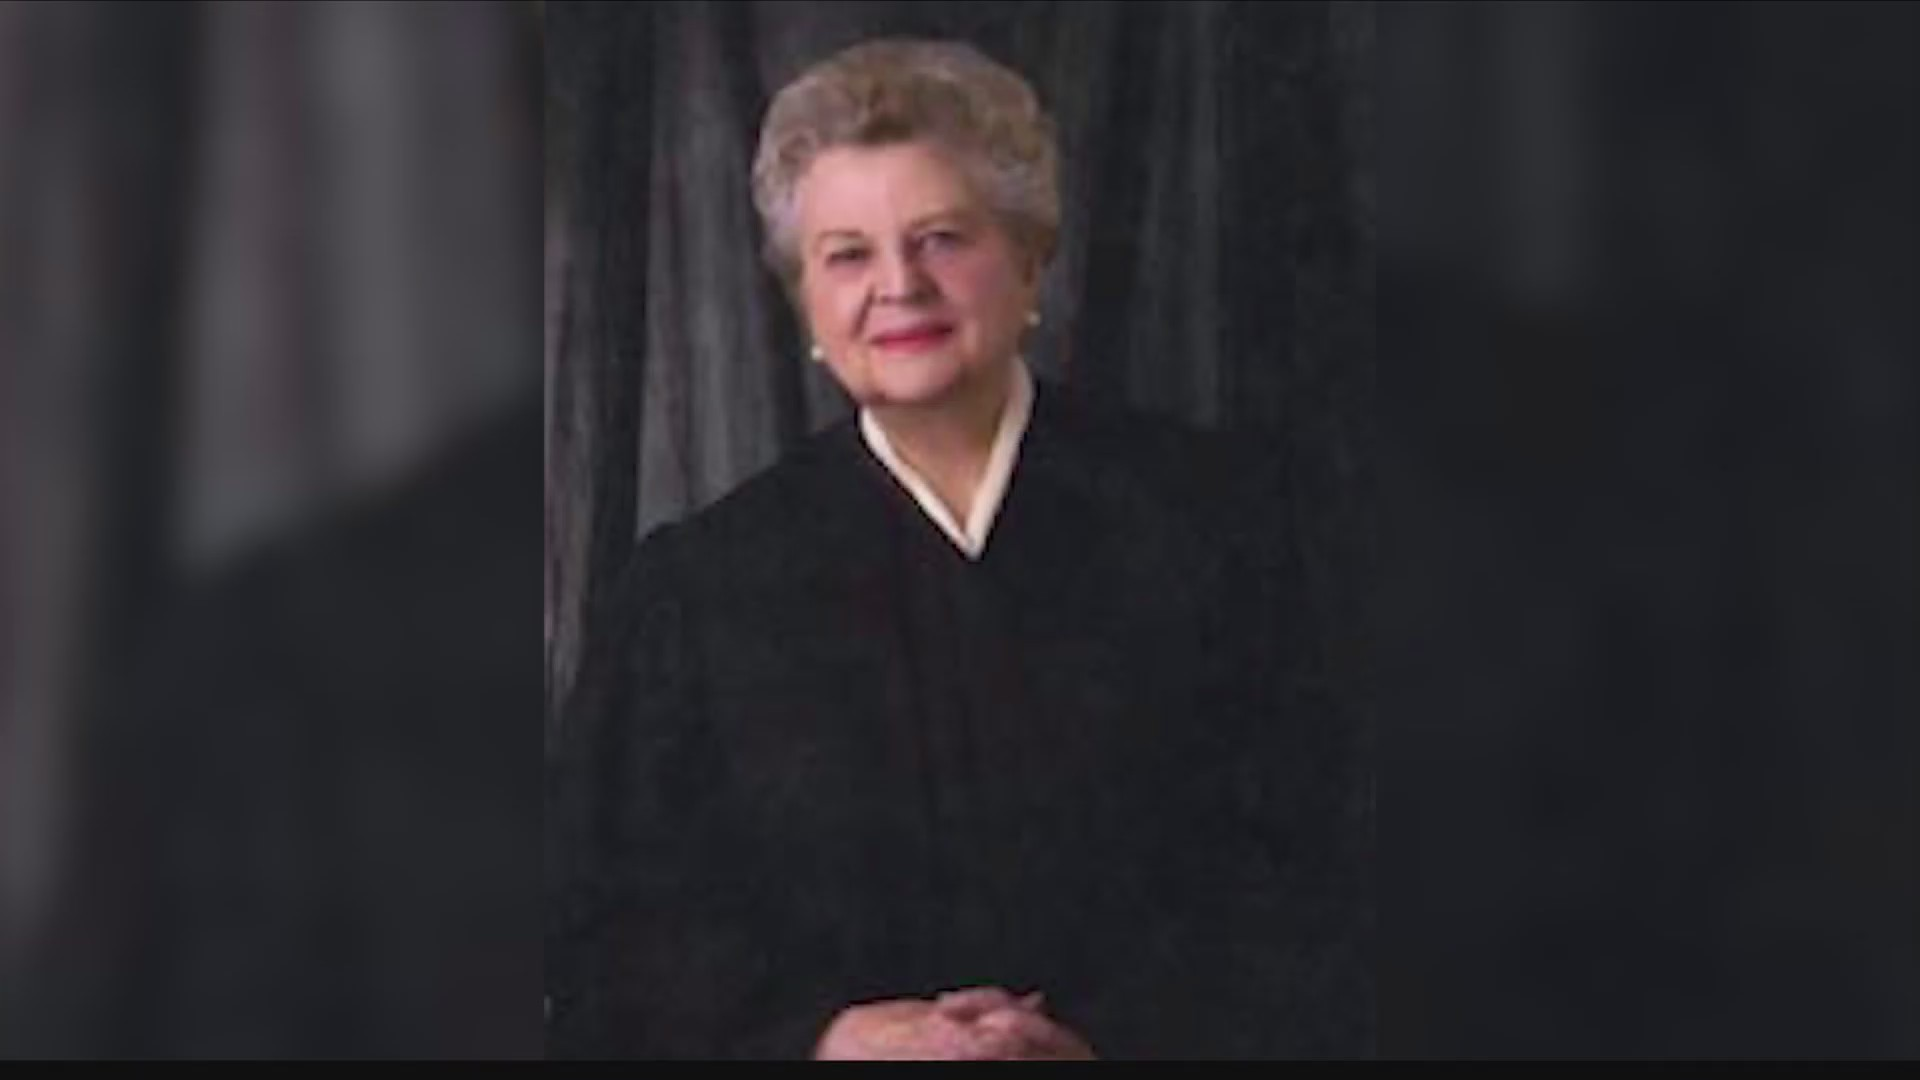 Judge Mary Lou Robinson's Legacy